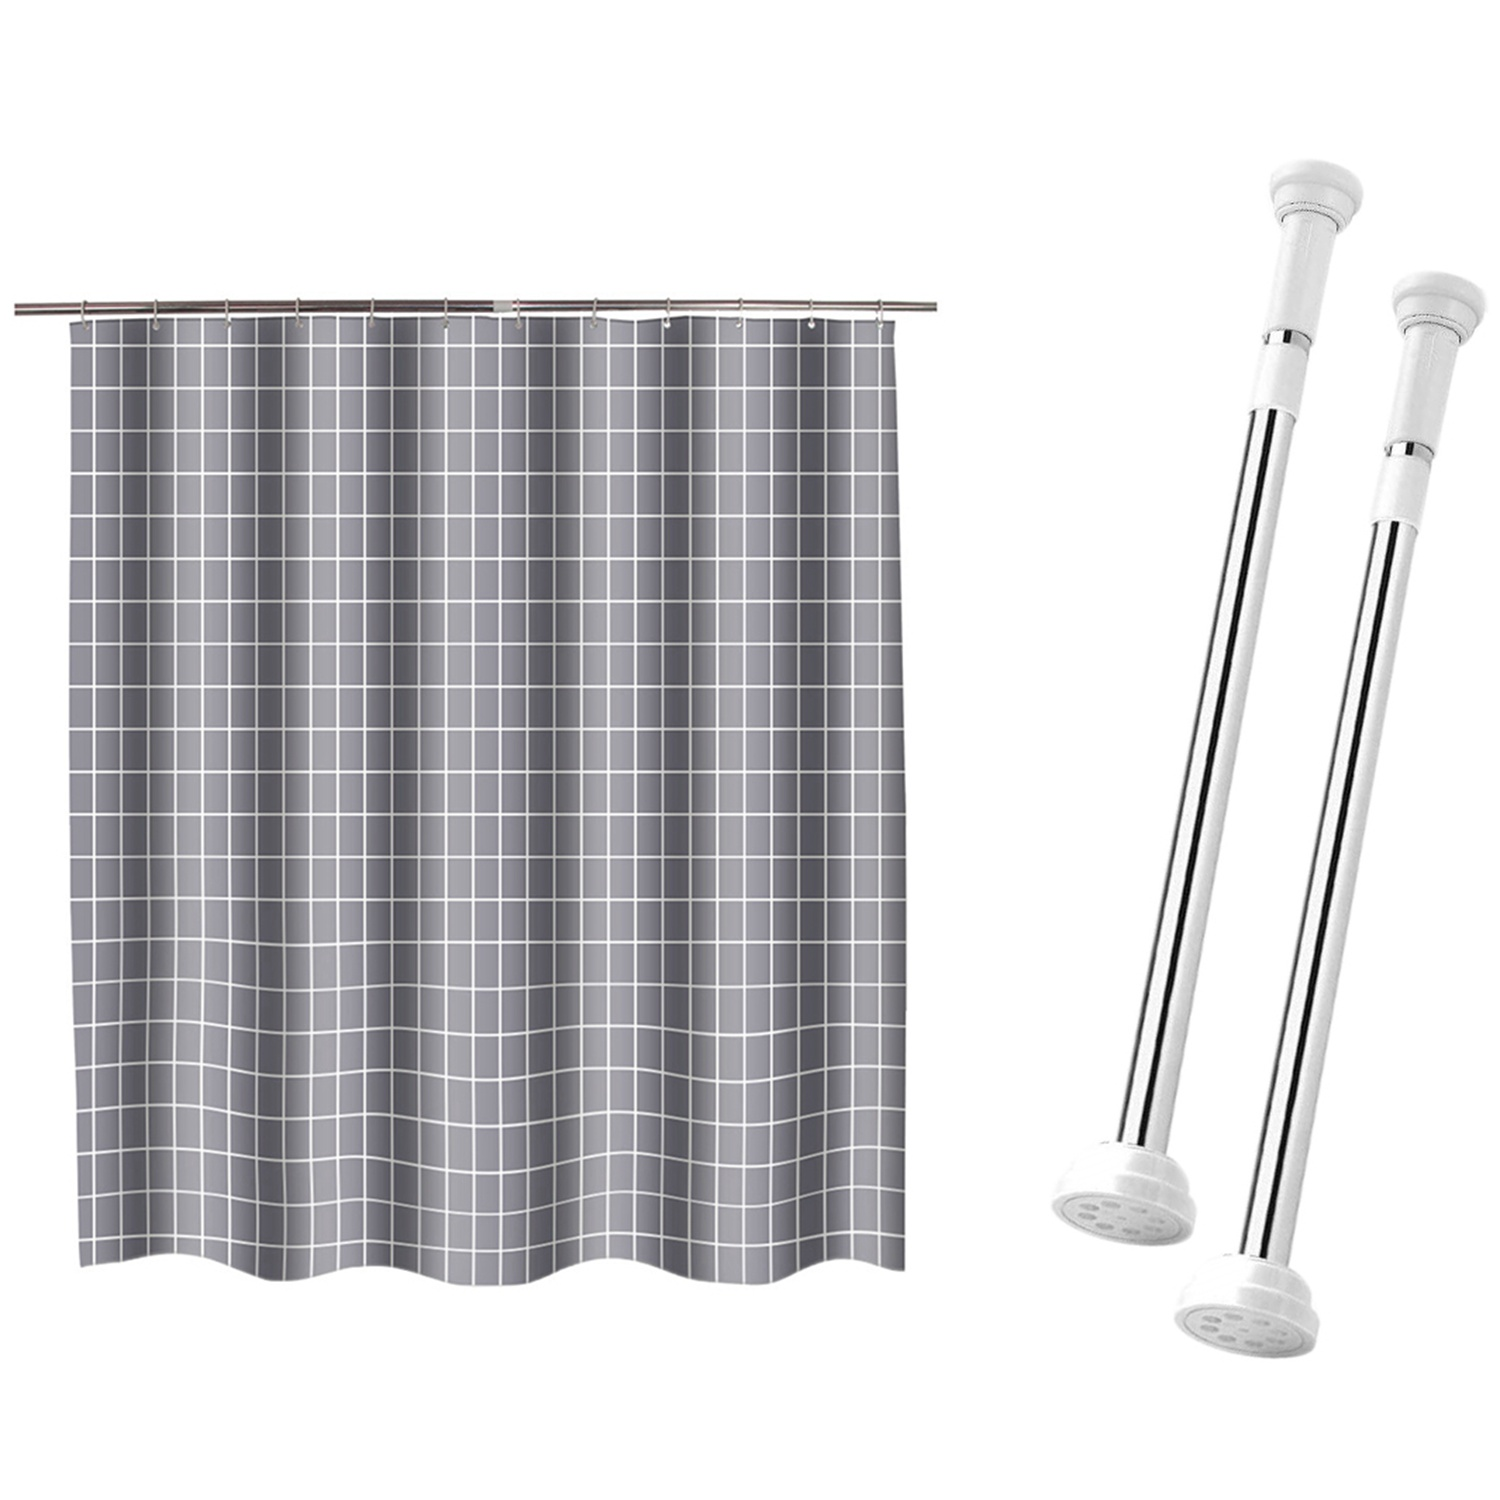 Tension Curtain Rod Spring Tension Rods Closet Rod 2 Pack With Home Hotel Toilet Waterproof Bathroom Partition Curtain Buy Online At Best Prices In Pakistan Daraz Pk